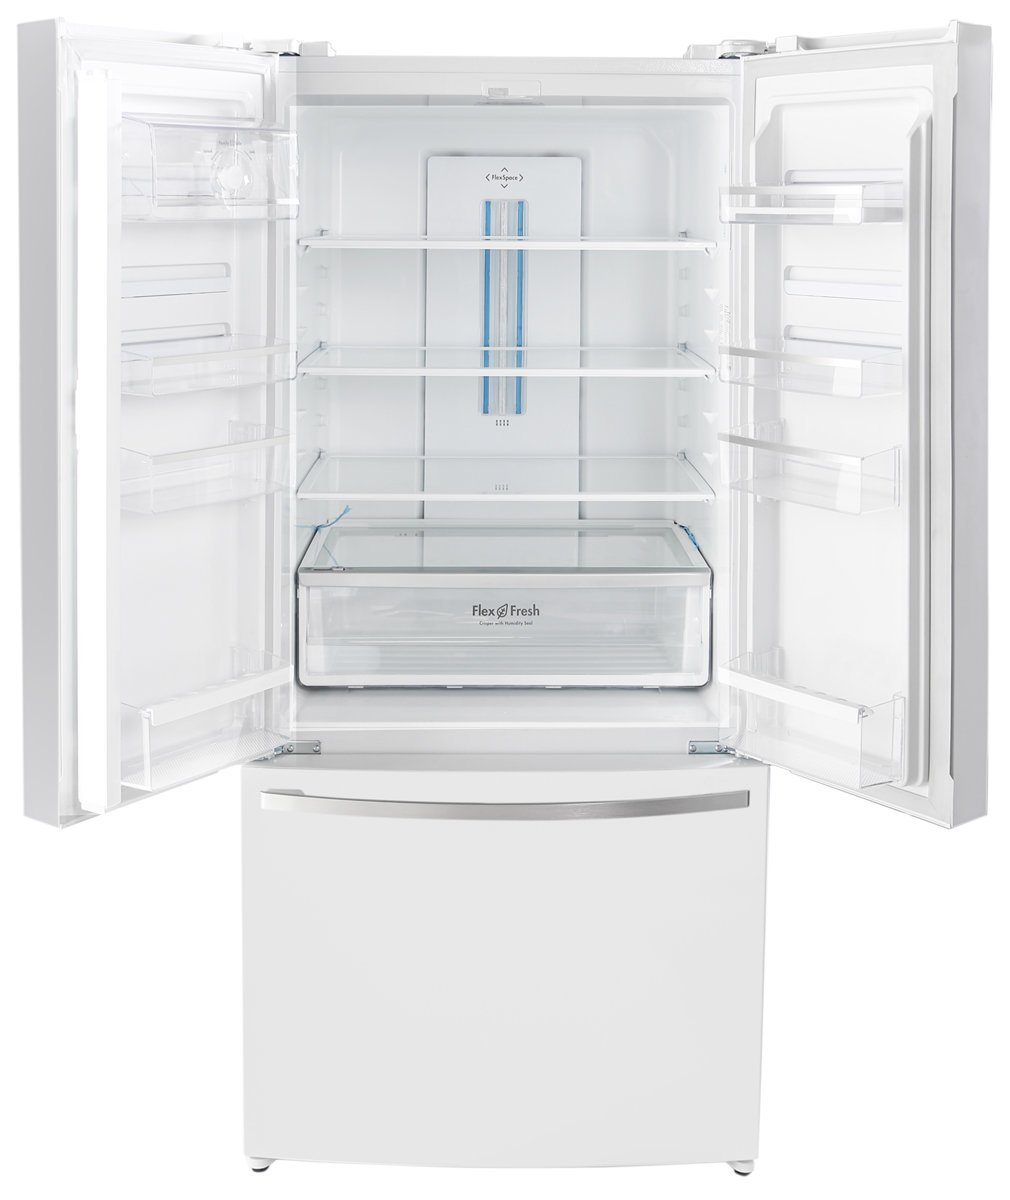 white french door refrigerator. Westinghouse WHE5200WA-D 520L French Door Fridge White Refrigerator X